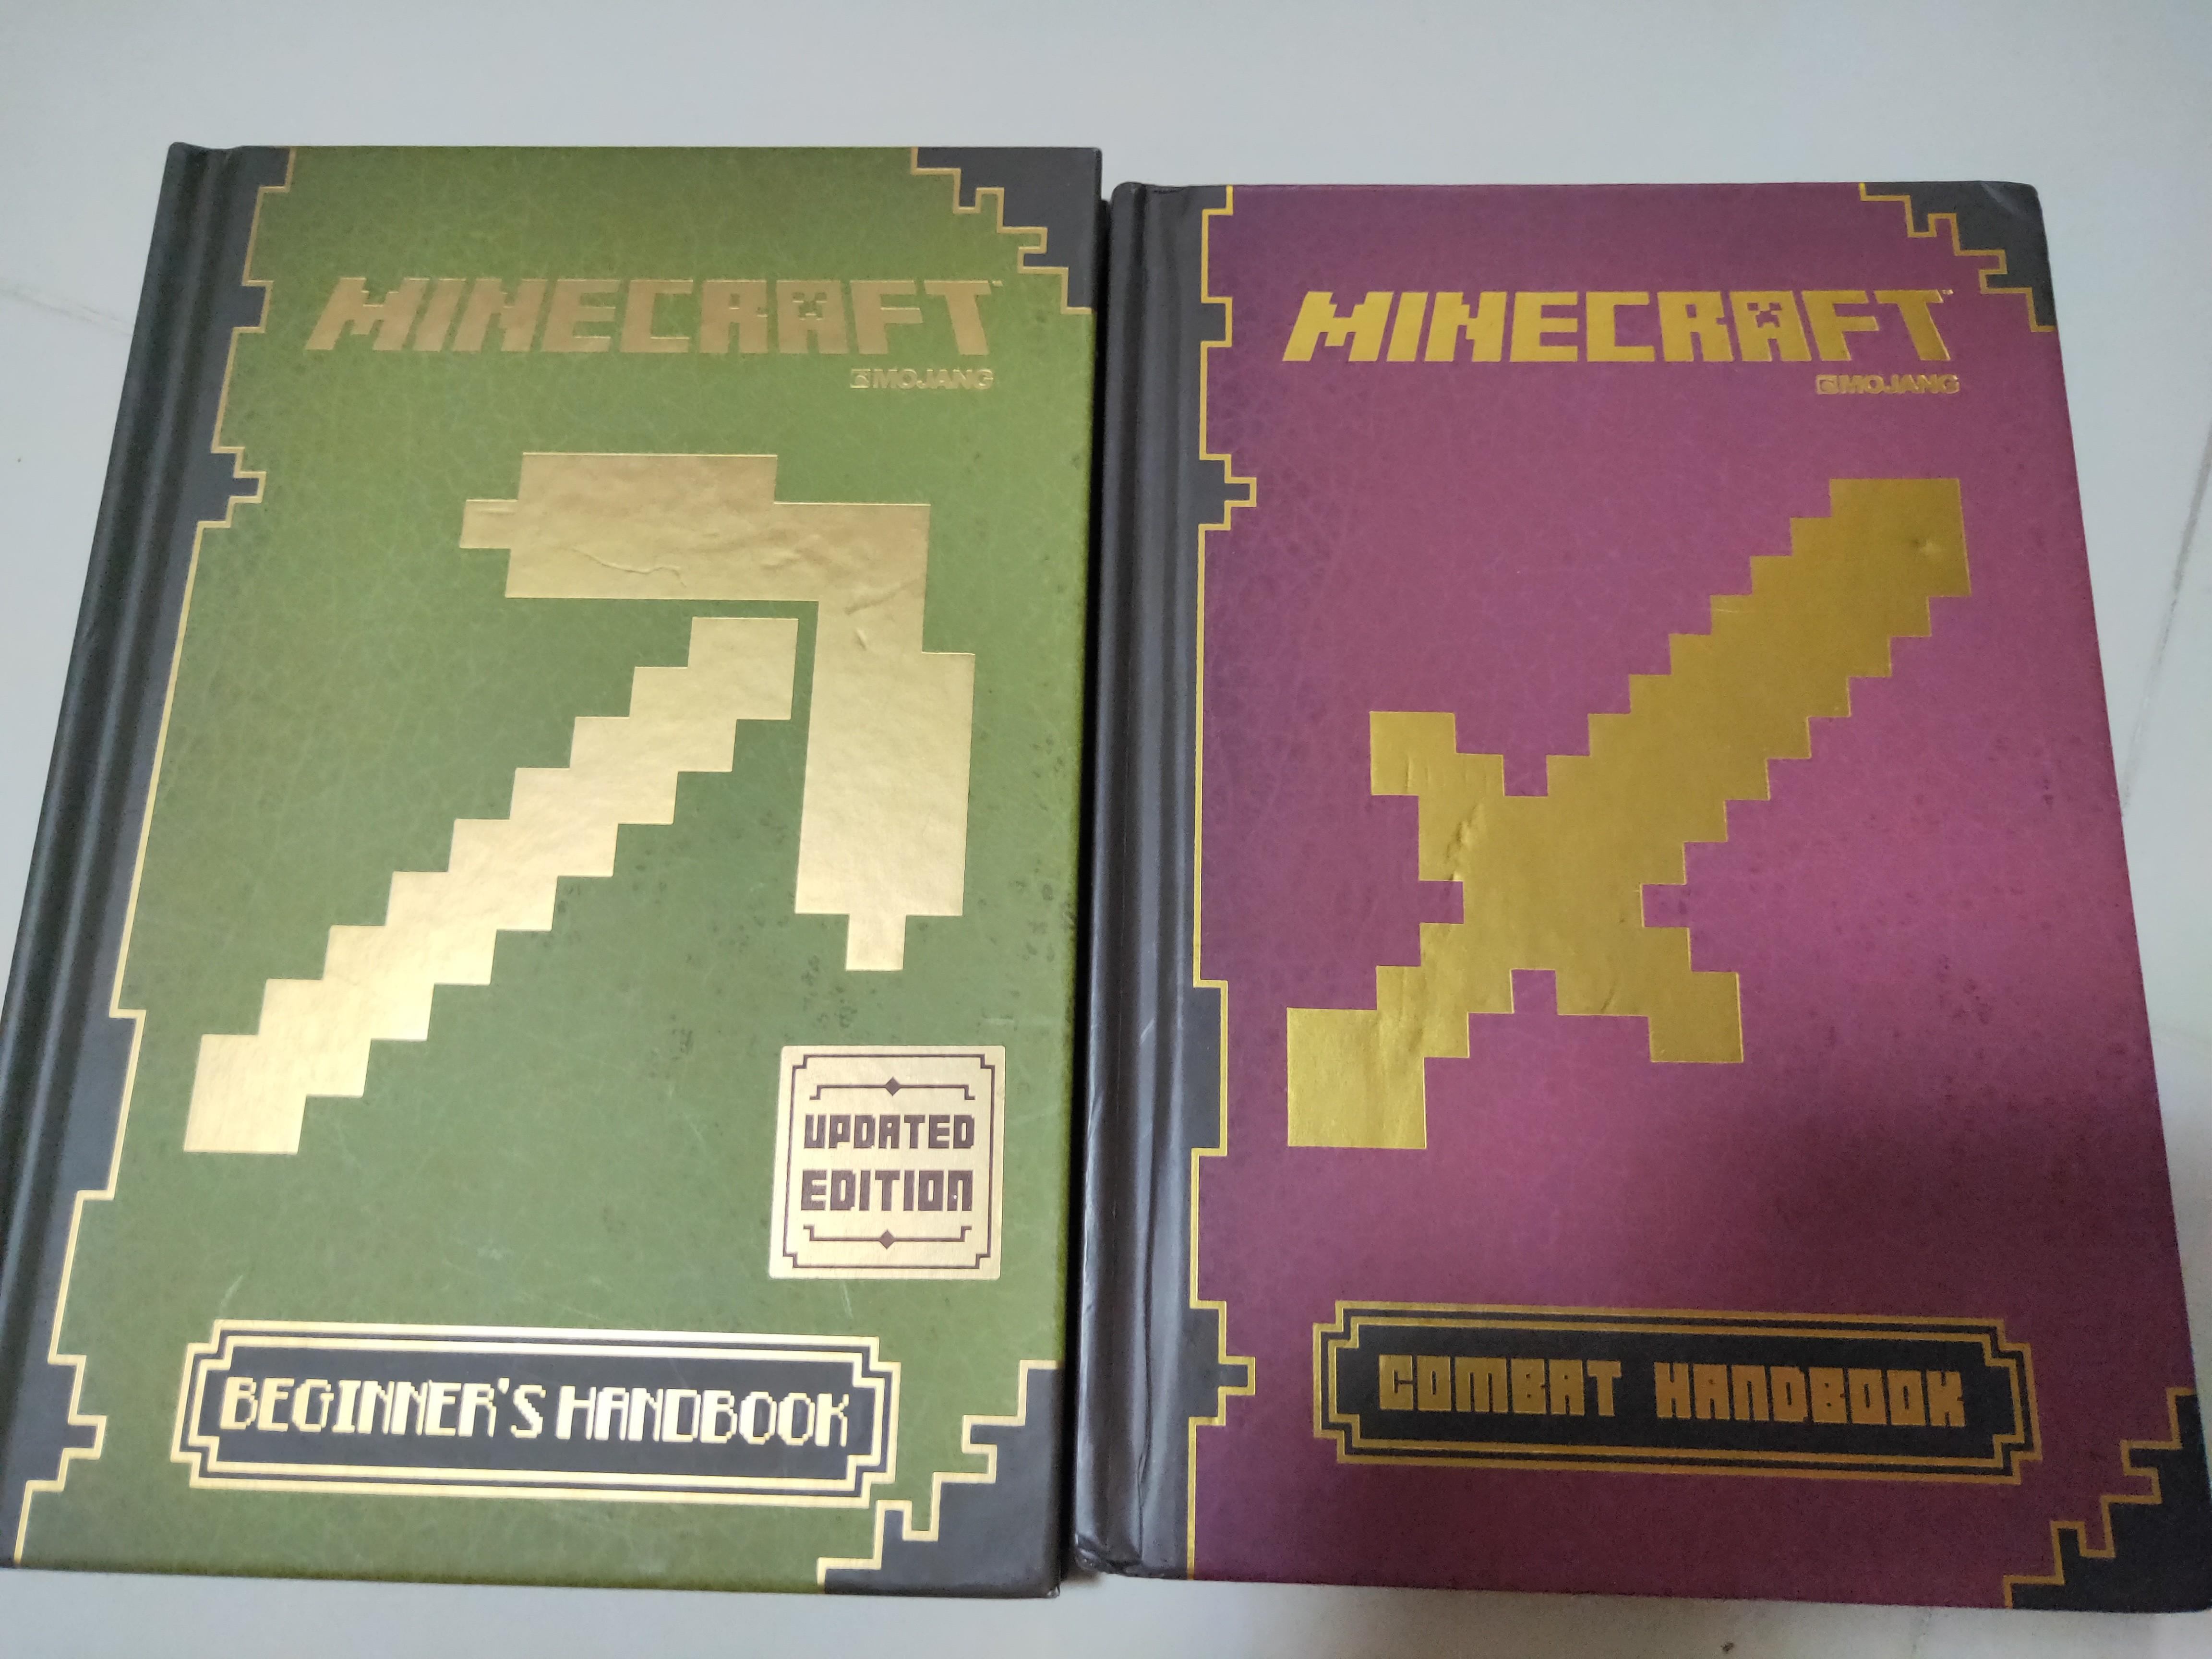 Minecraft guide, Books & Stationery, Children's Books on